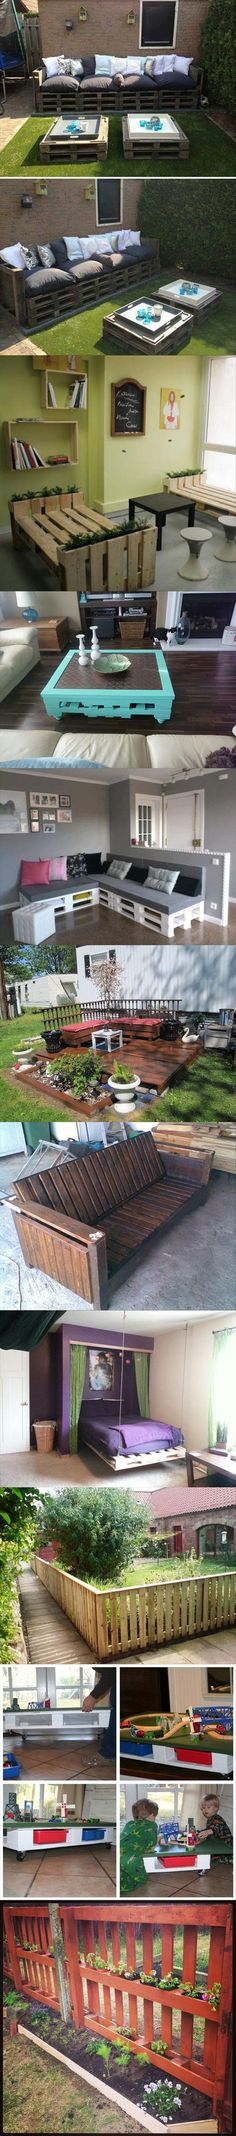 Amazing Uses For Old Pallets - DIY Projects… (Diy Furniture Crates) Pallet Crafts, Pallet Projects, Pallet Ideas, Home Projects, Diy Pallet, Old Pallets, Wooden Pallets, Outdoor Projects, Outdoor Decor